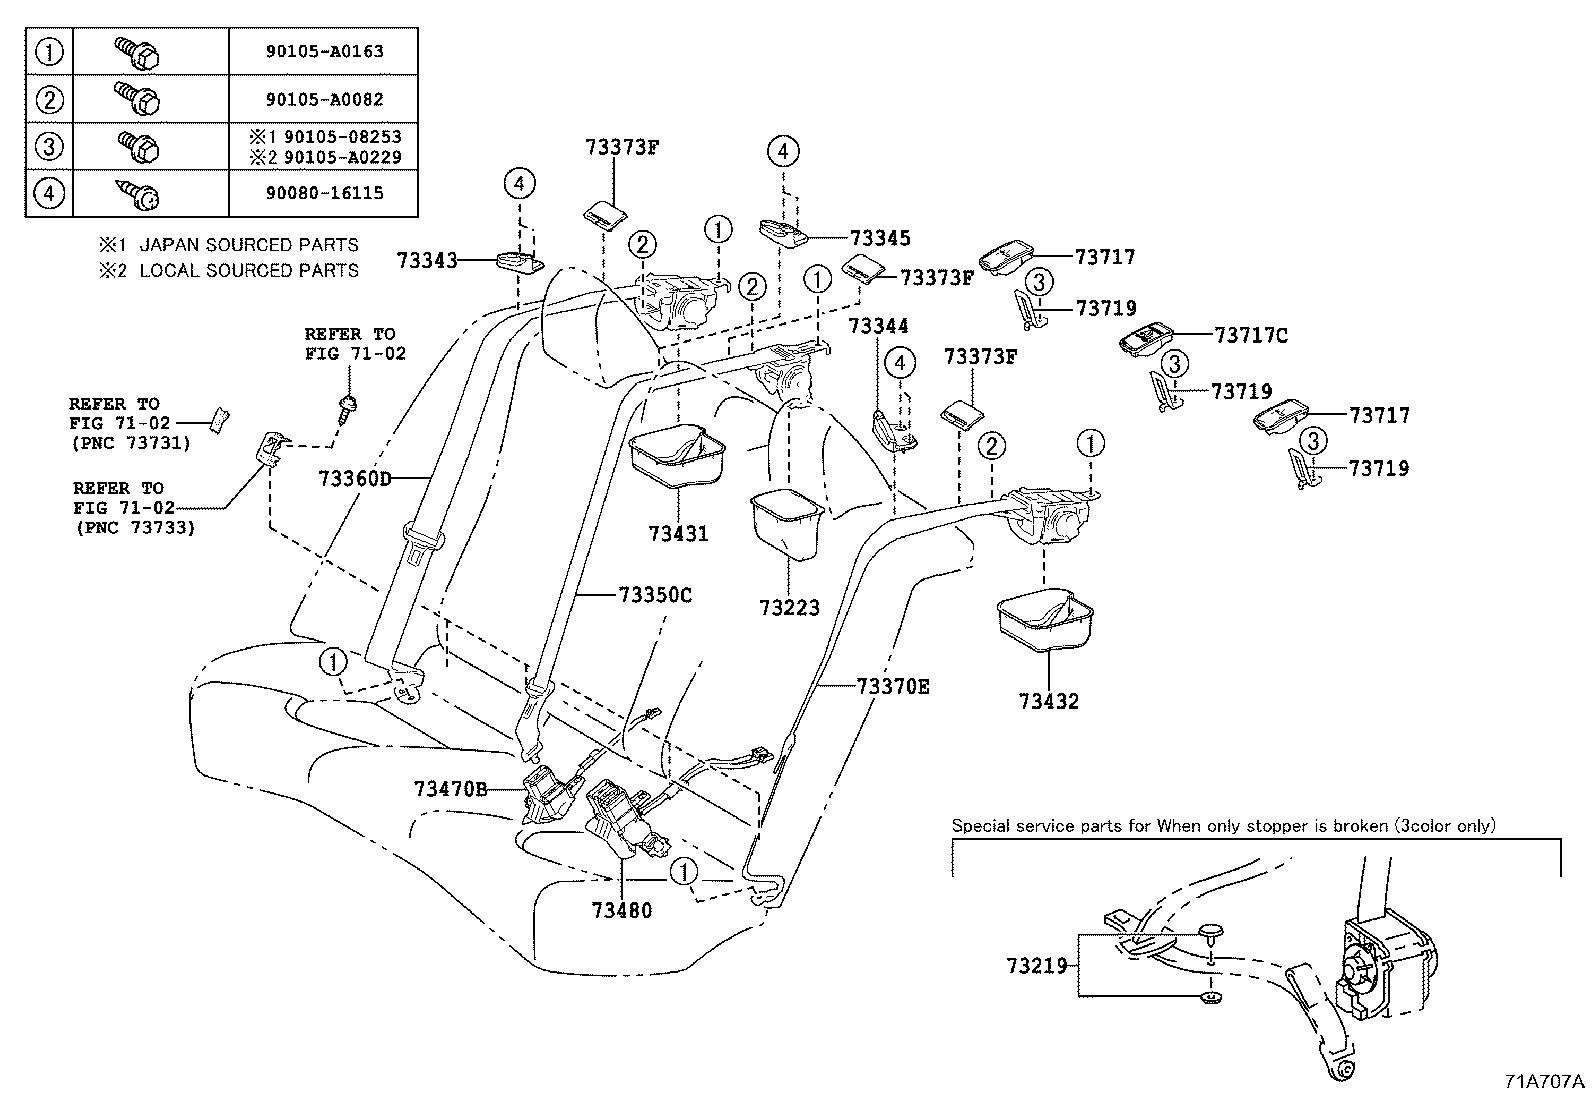 toyota camry interior parts diagram line of house plan 2018 cover seat belt retractor 7322306110